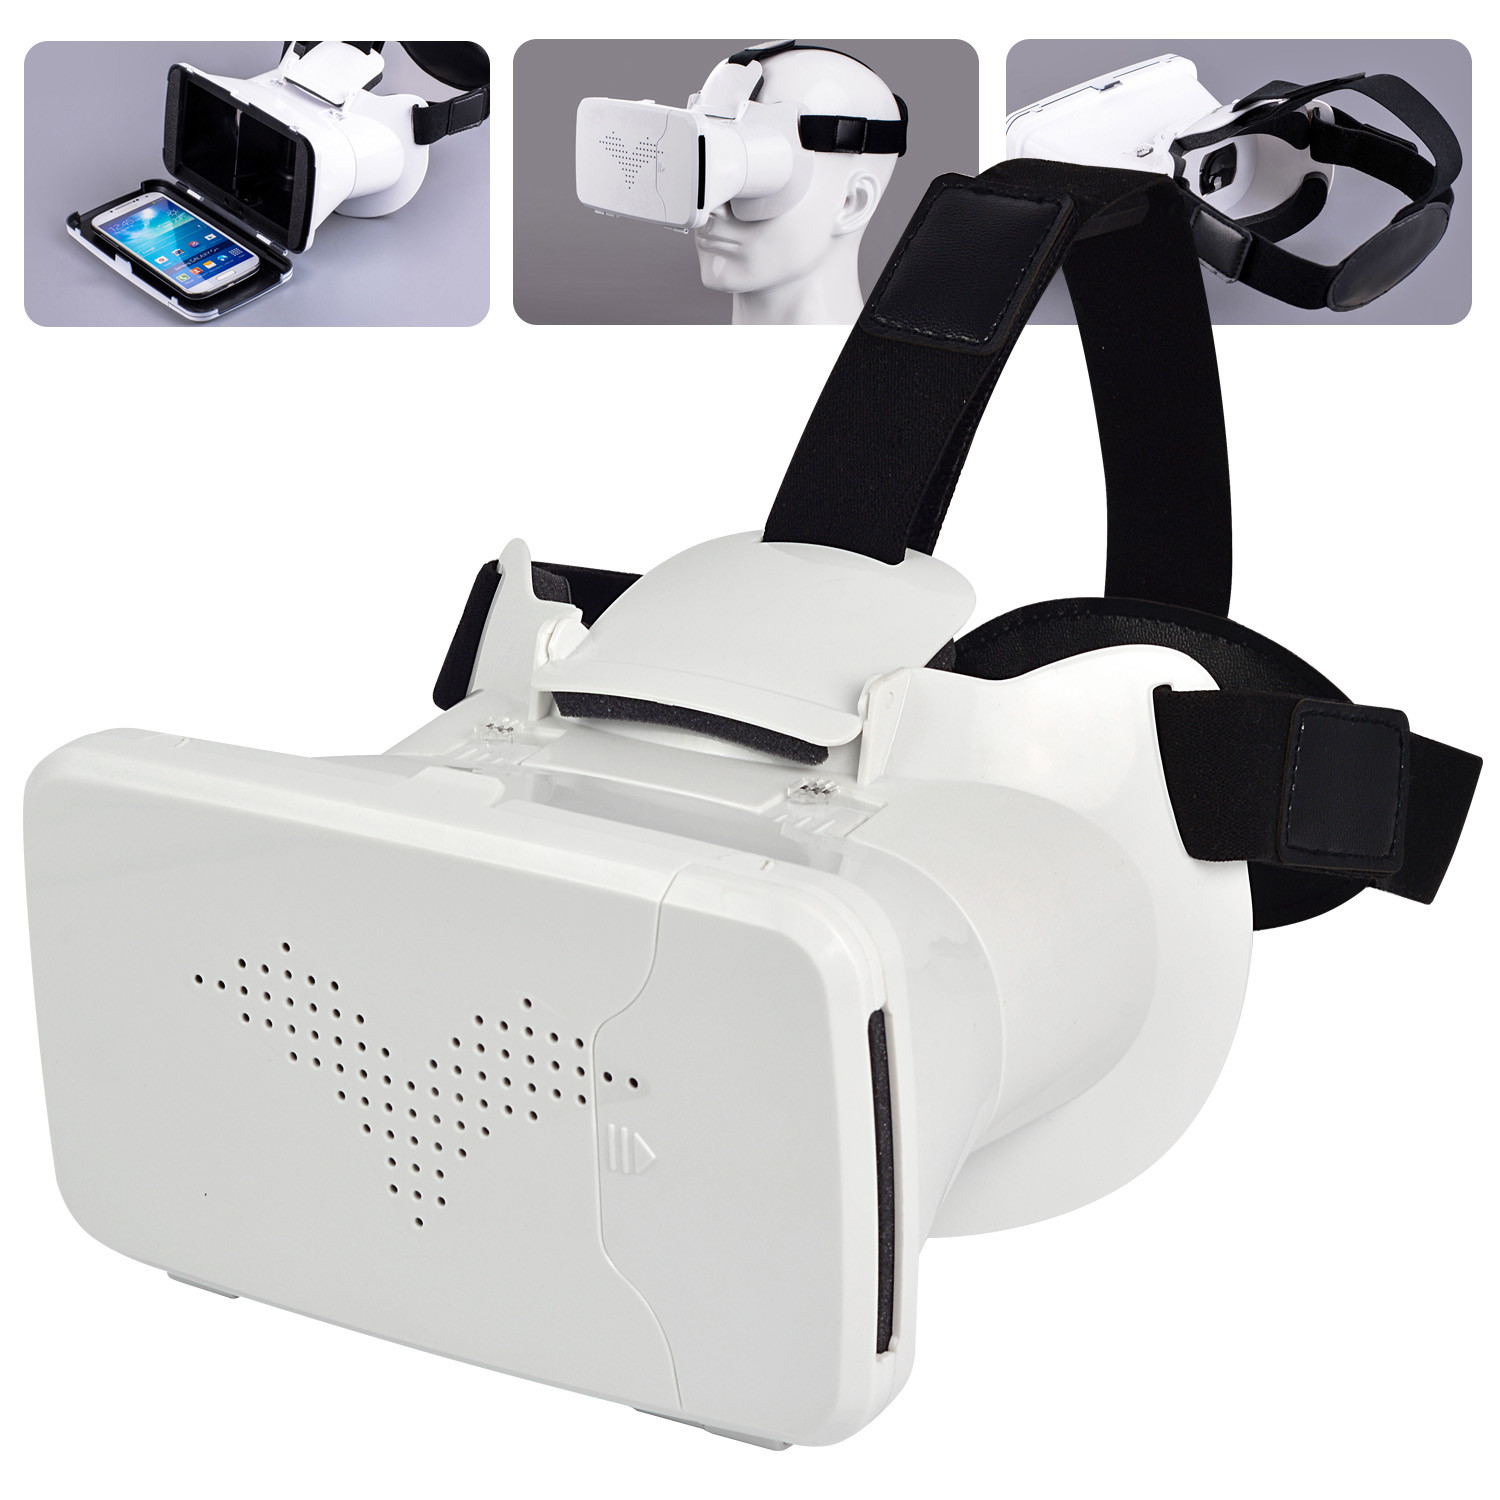 MENGS® RIEM 3 virtual reality 3D glasses VR headset with ABS material and capacitive touch button compatible for mobile phones 3.5~6.0 inches screen